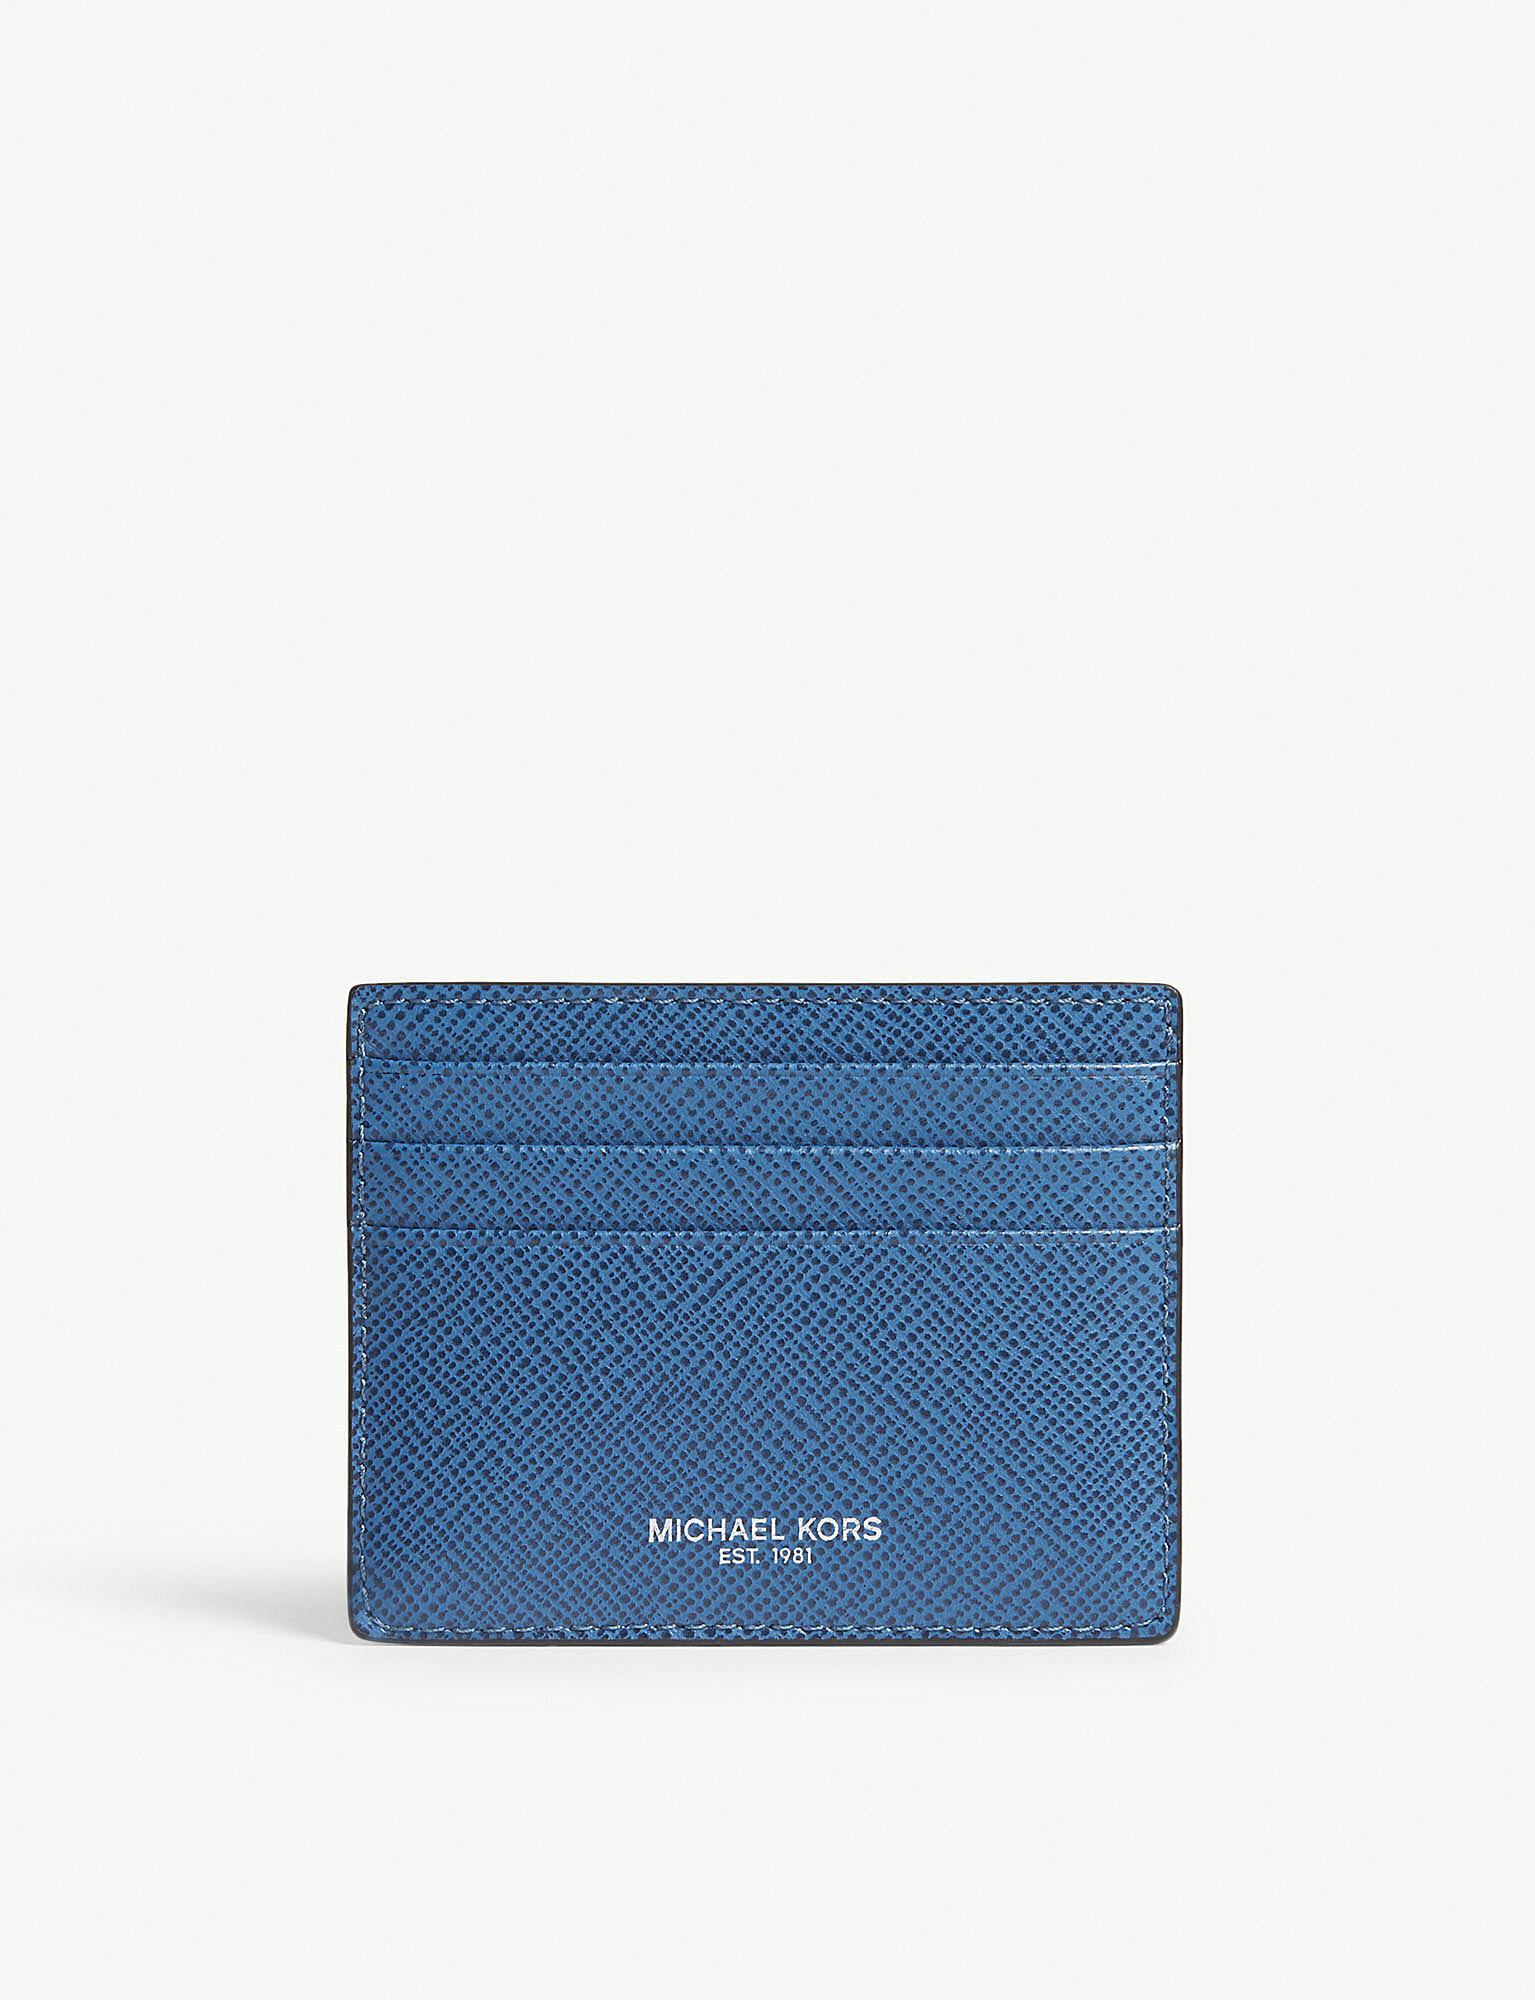 8f06161986b4 Michael Kors Harrison Leather Card Holder in Blue - Lyst